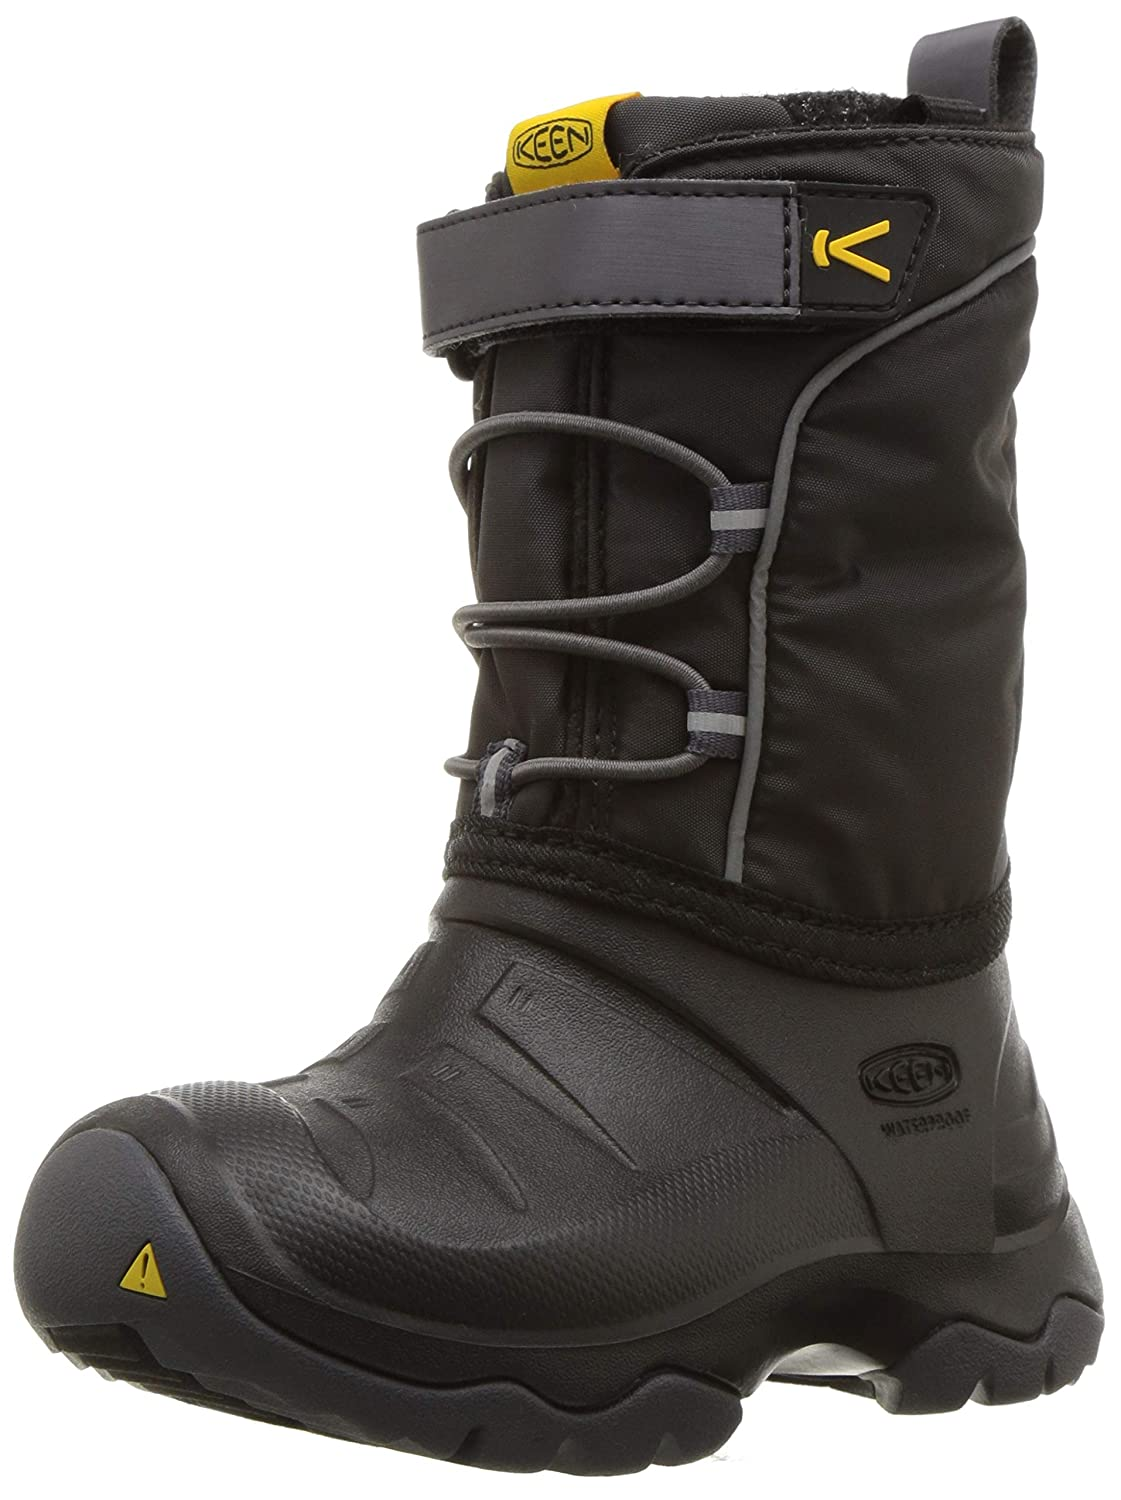 KEEN Kids' Lumi Boot Wp Hiking